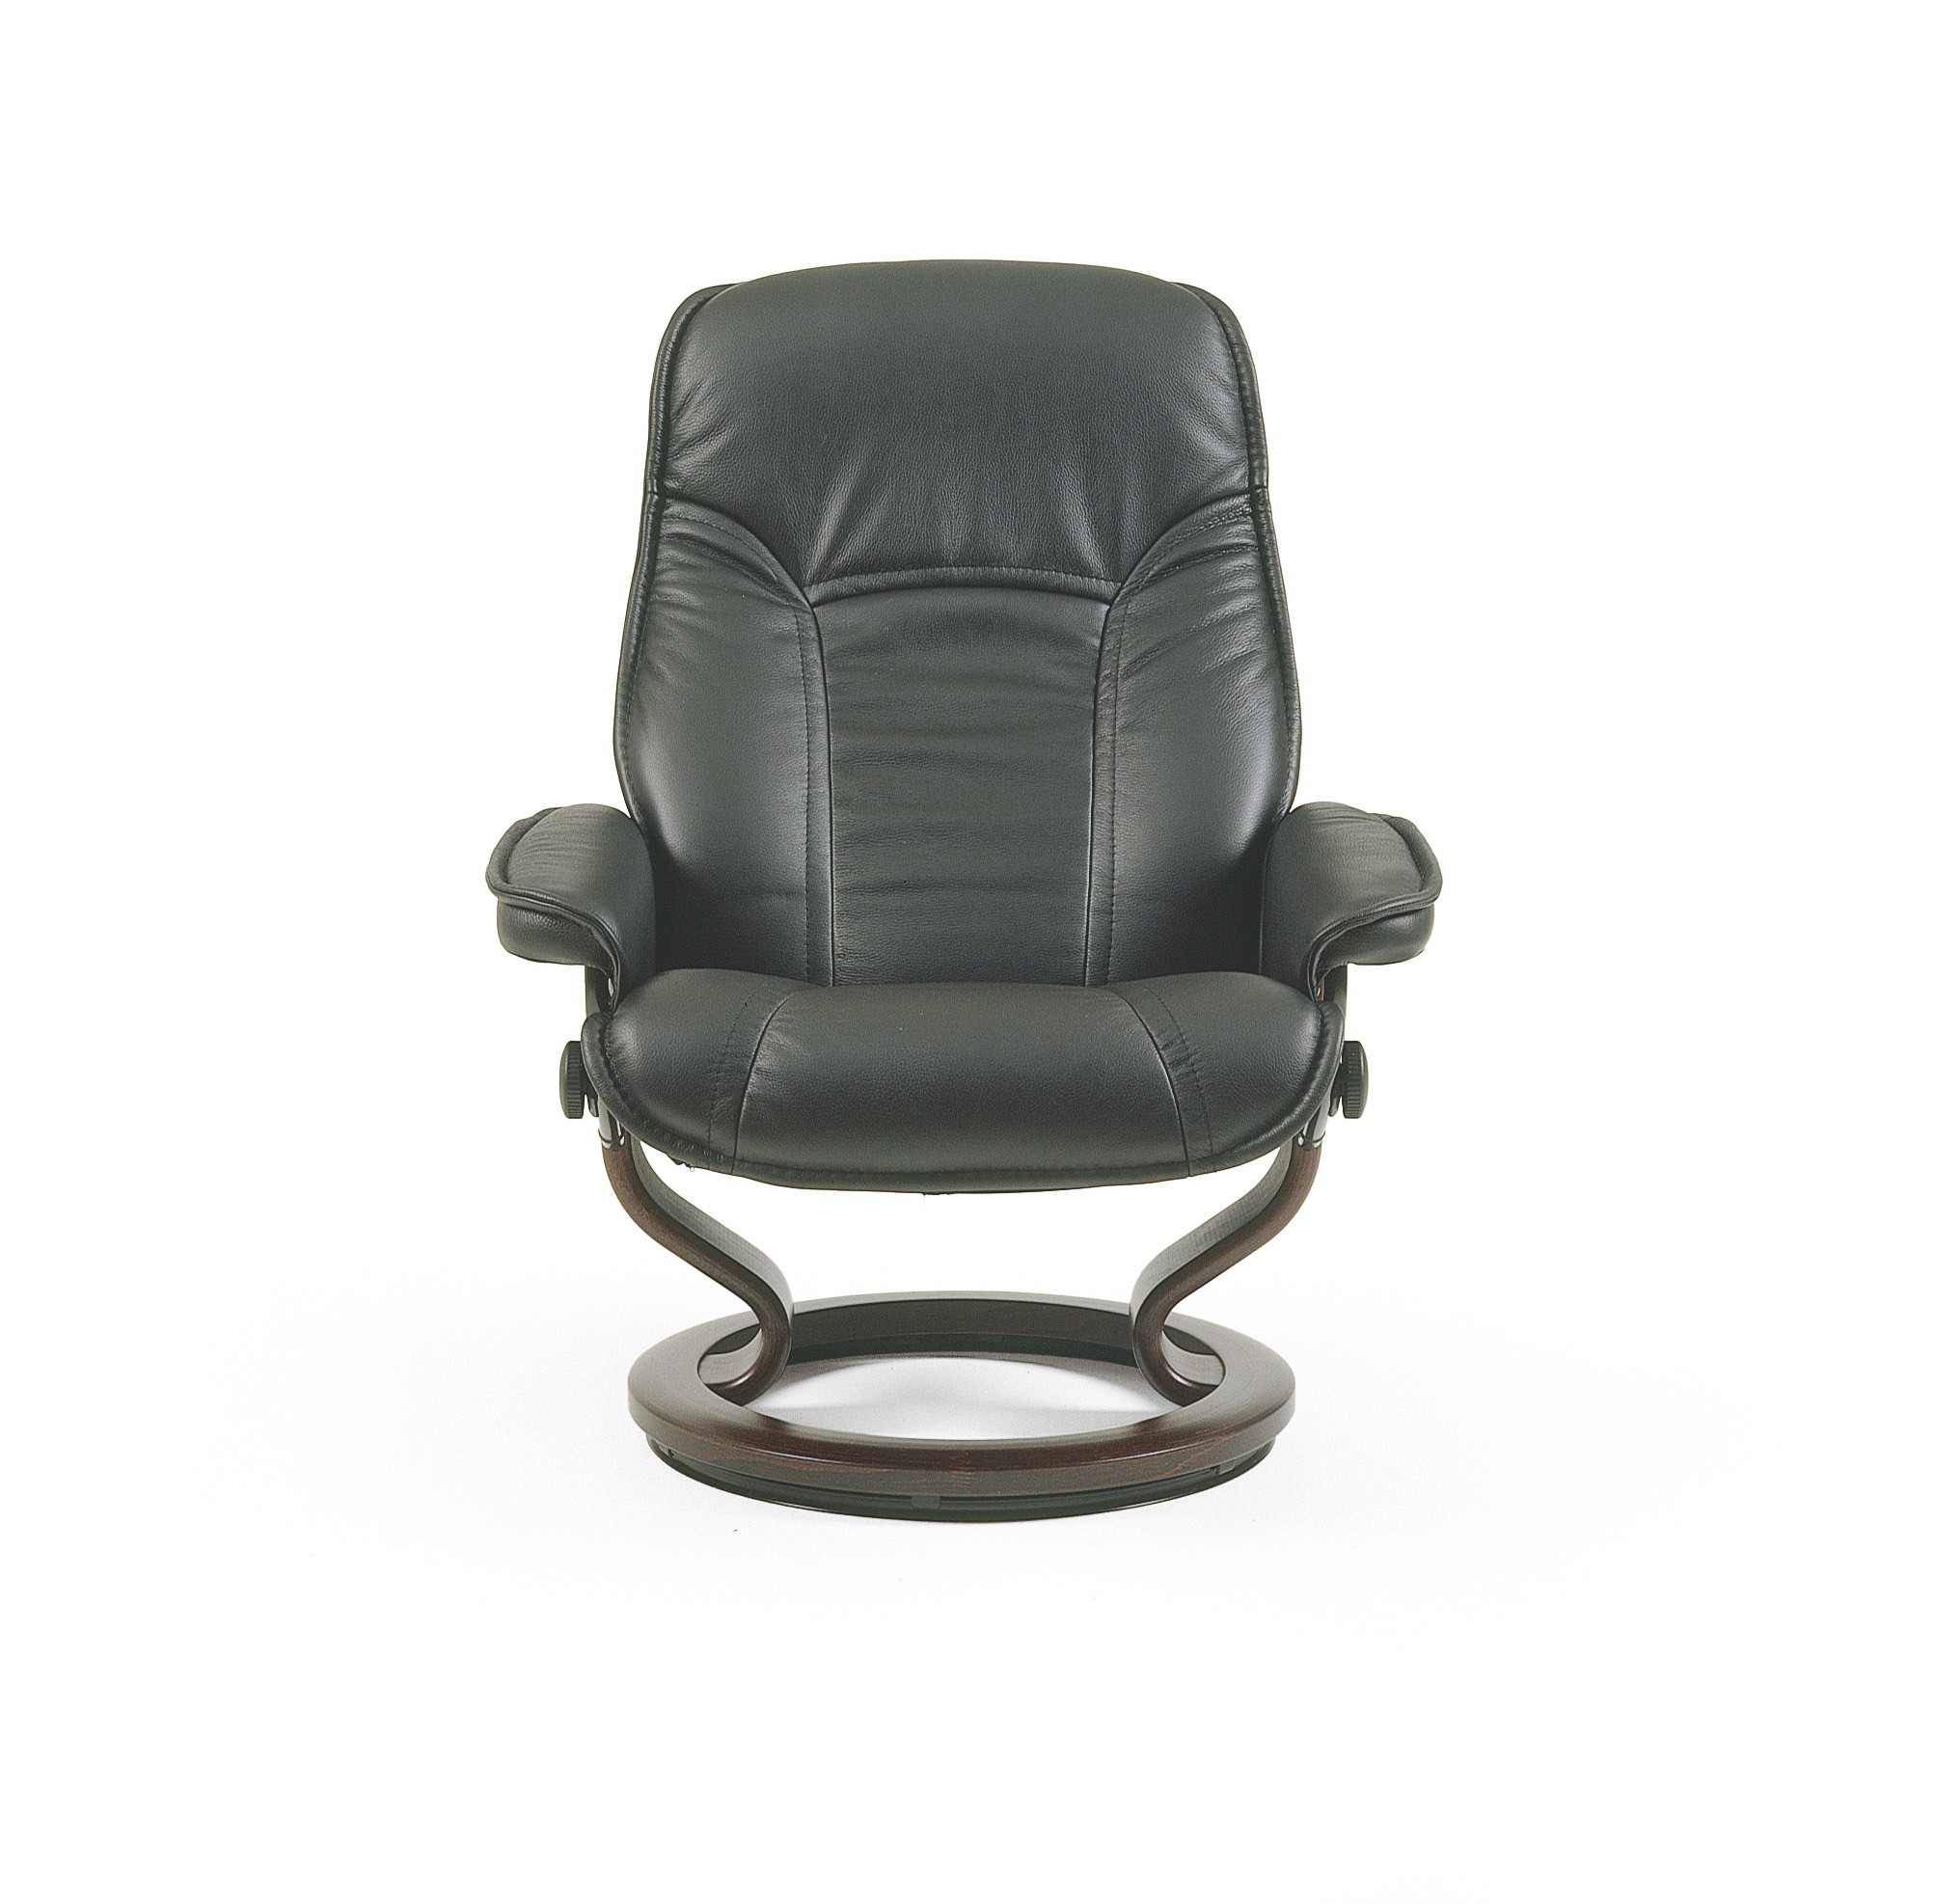 sc 1 st  Chair Envy & Ekornes Stressless Senator / Governor Recliner with Matching Ottoman islam-shia.org